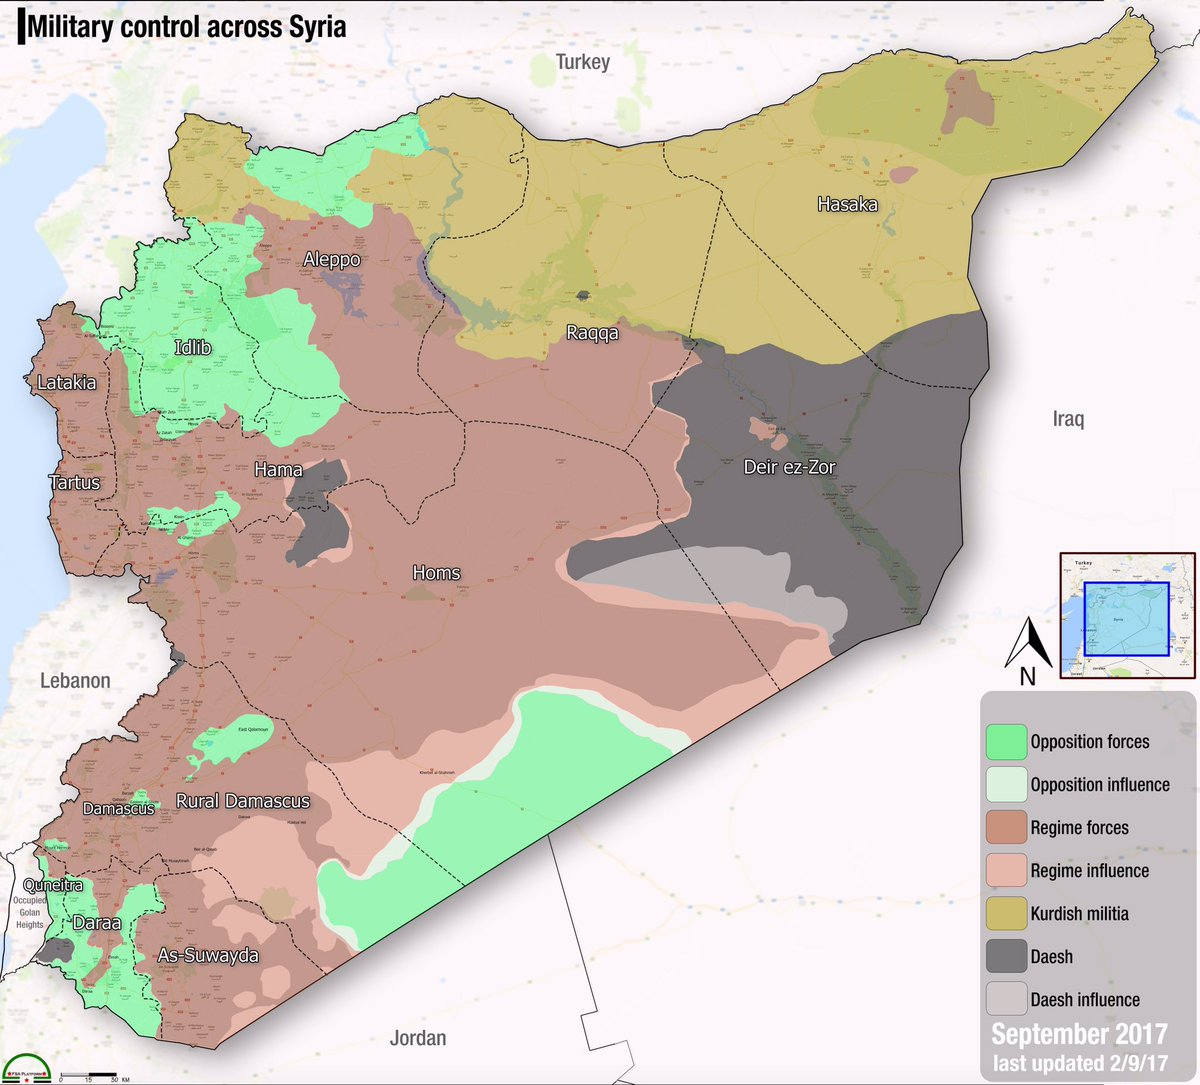 fsa news on twitter new map syria military control across syria at the beginning of the month of september